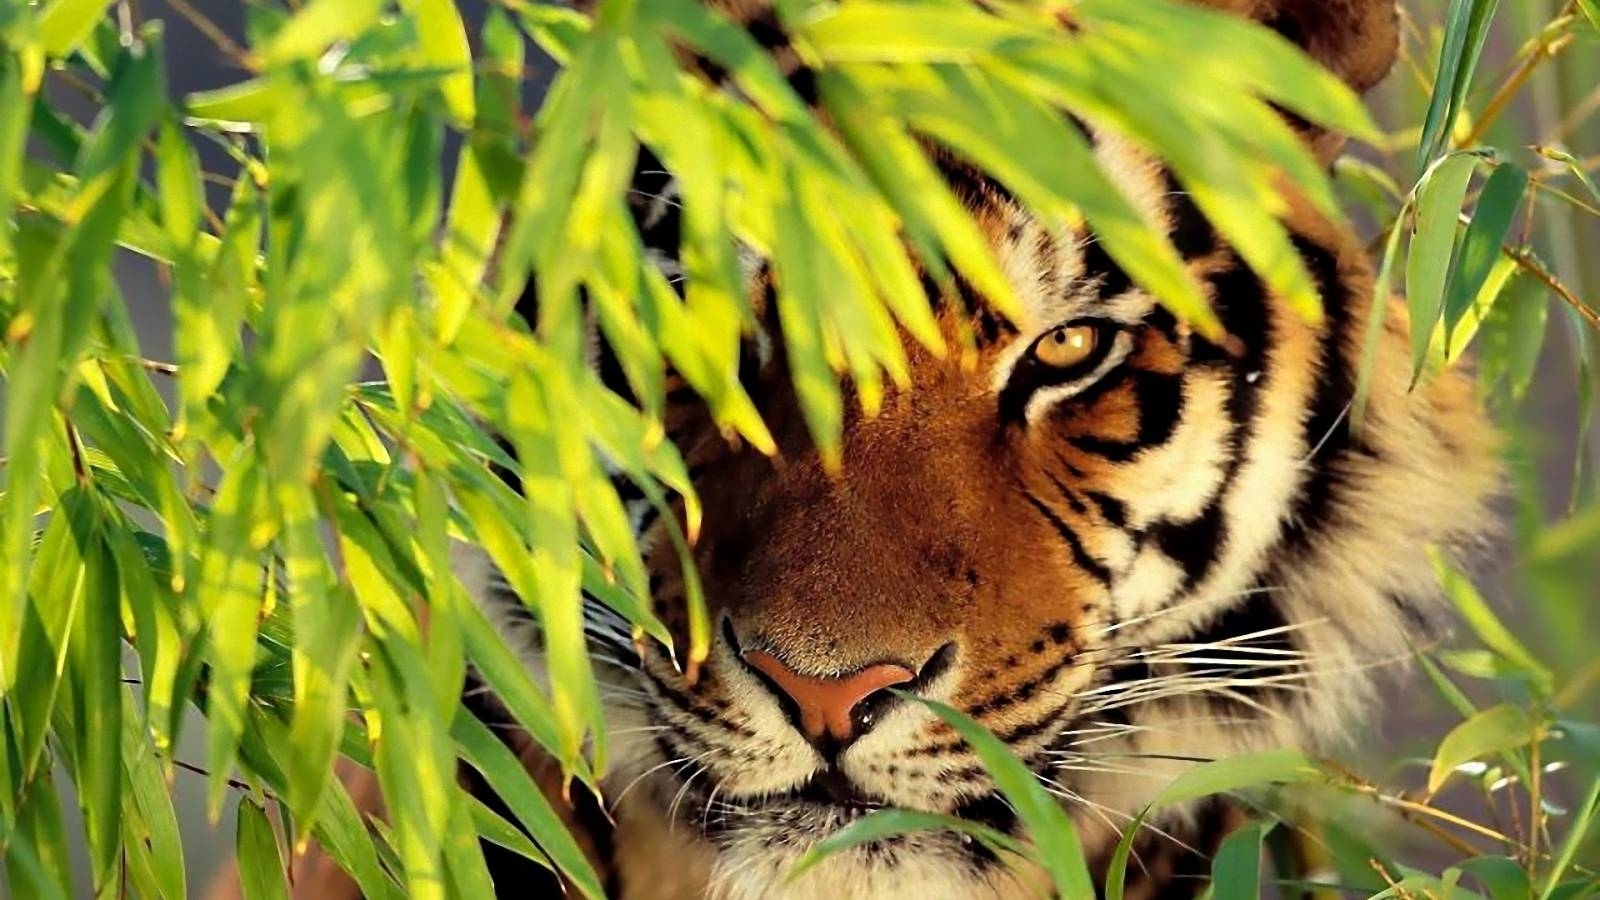 as:48 - tiger wallpapers, hq definition awesome tiger pictures